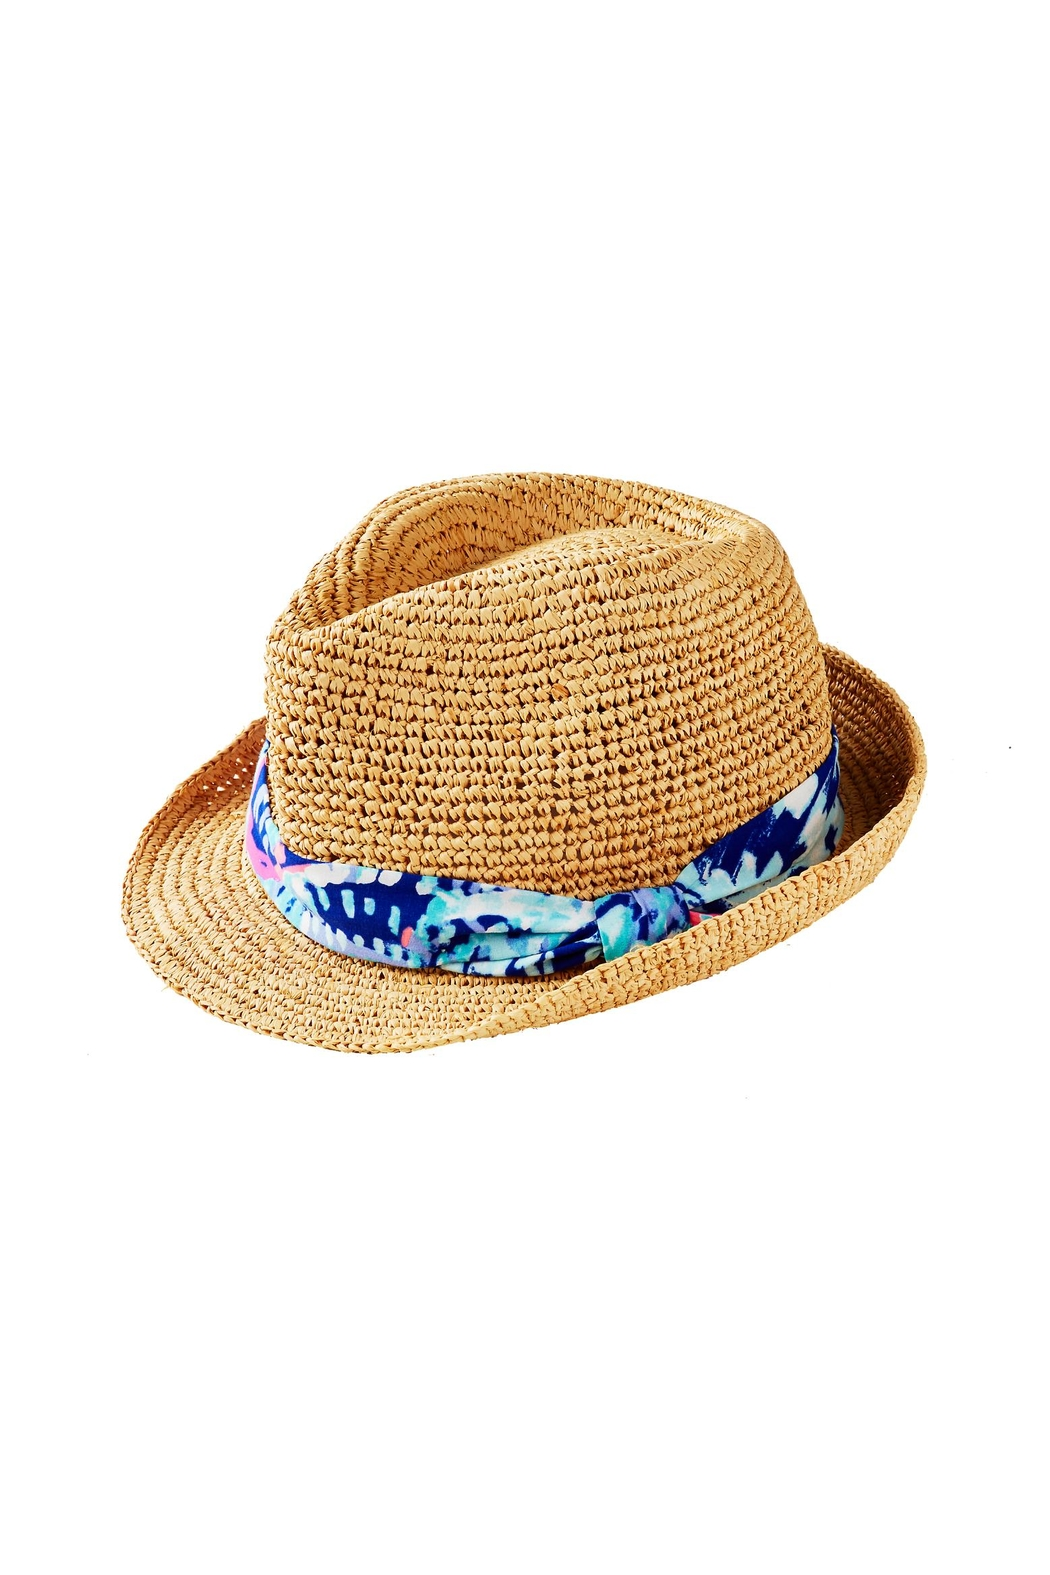 Lilly Pulitzer Poolside Hat - Main Image